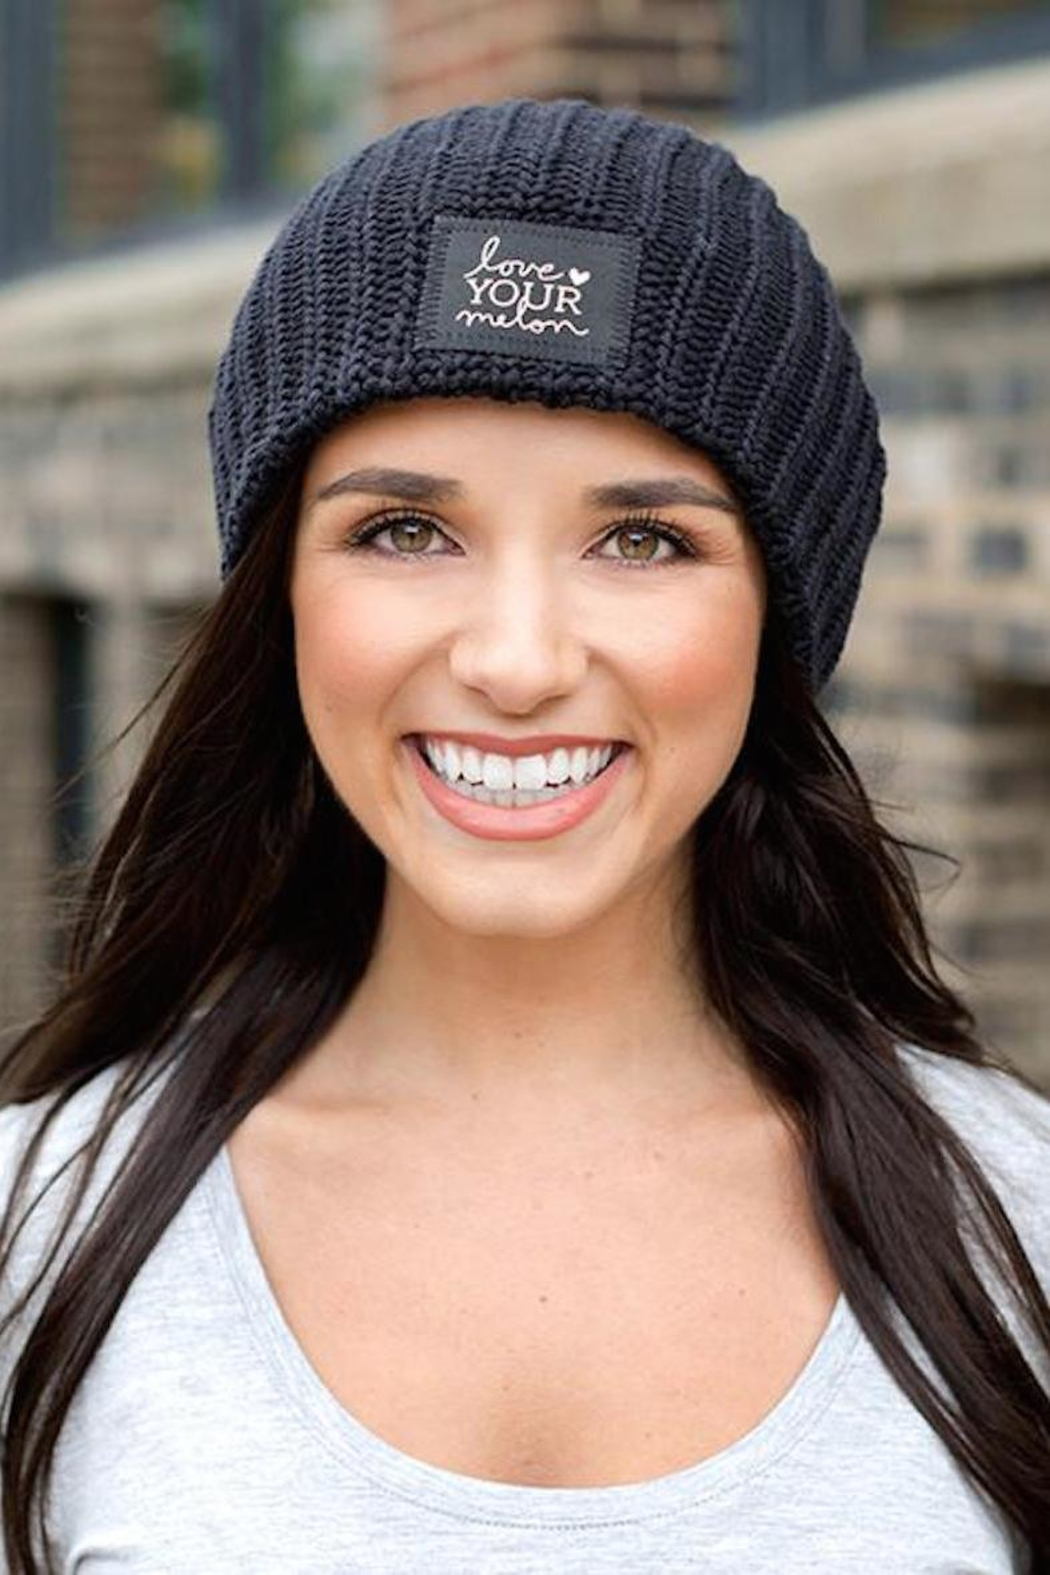 af2d7a6f35662 Love Your Melon Black Foil Beanie from New Jersey by Barefoot ...